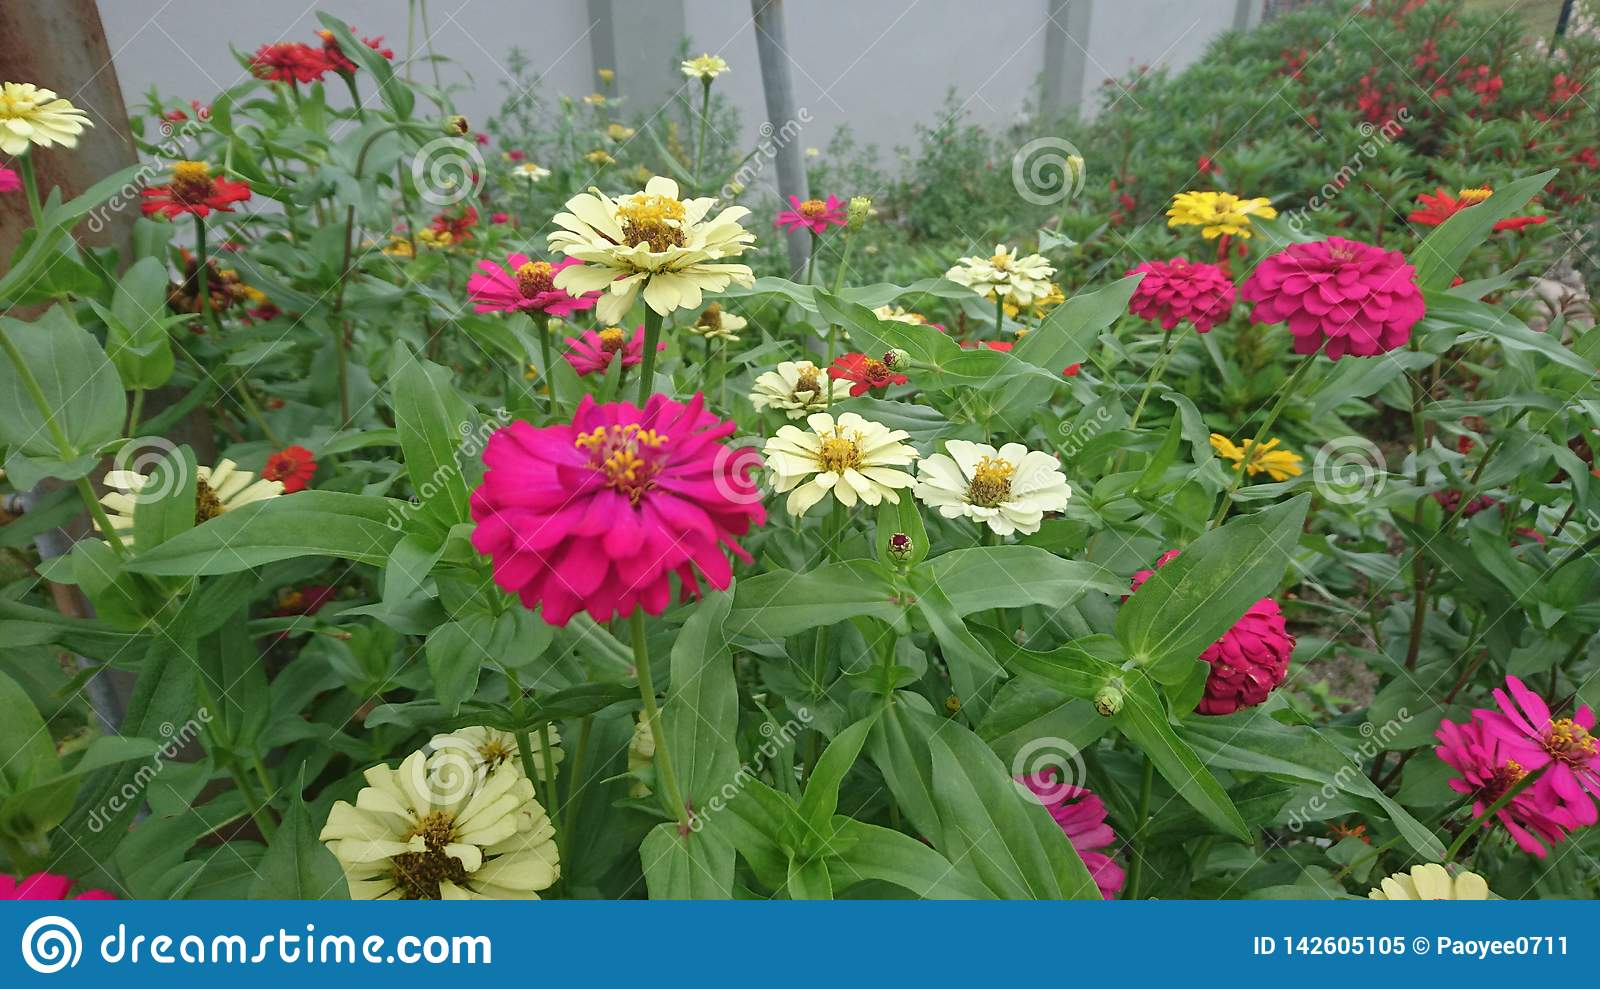 Flowers grows from natural soil